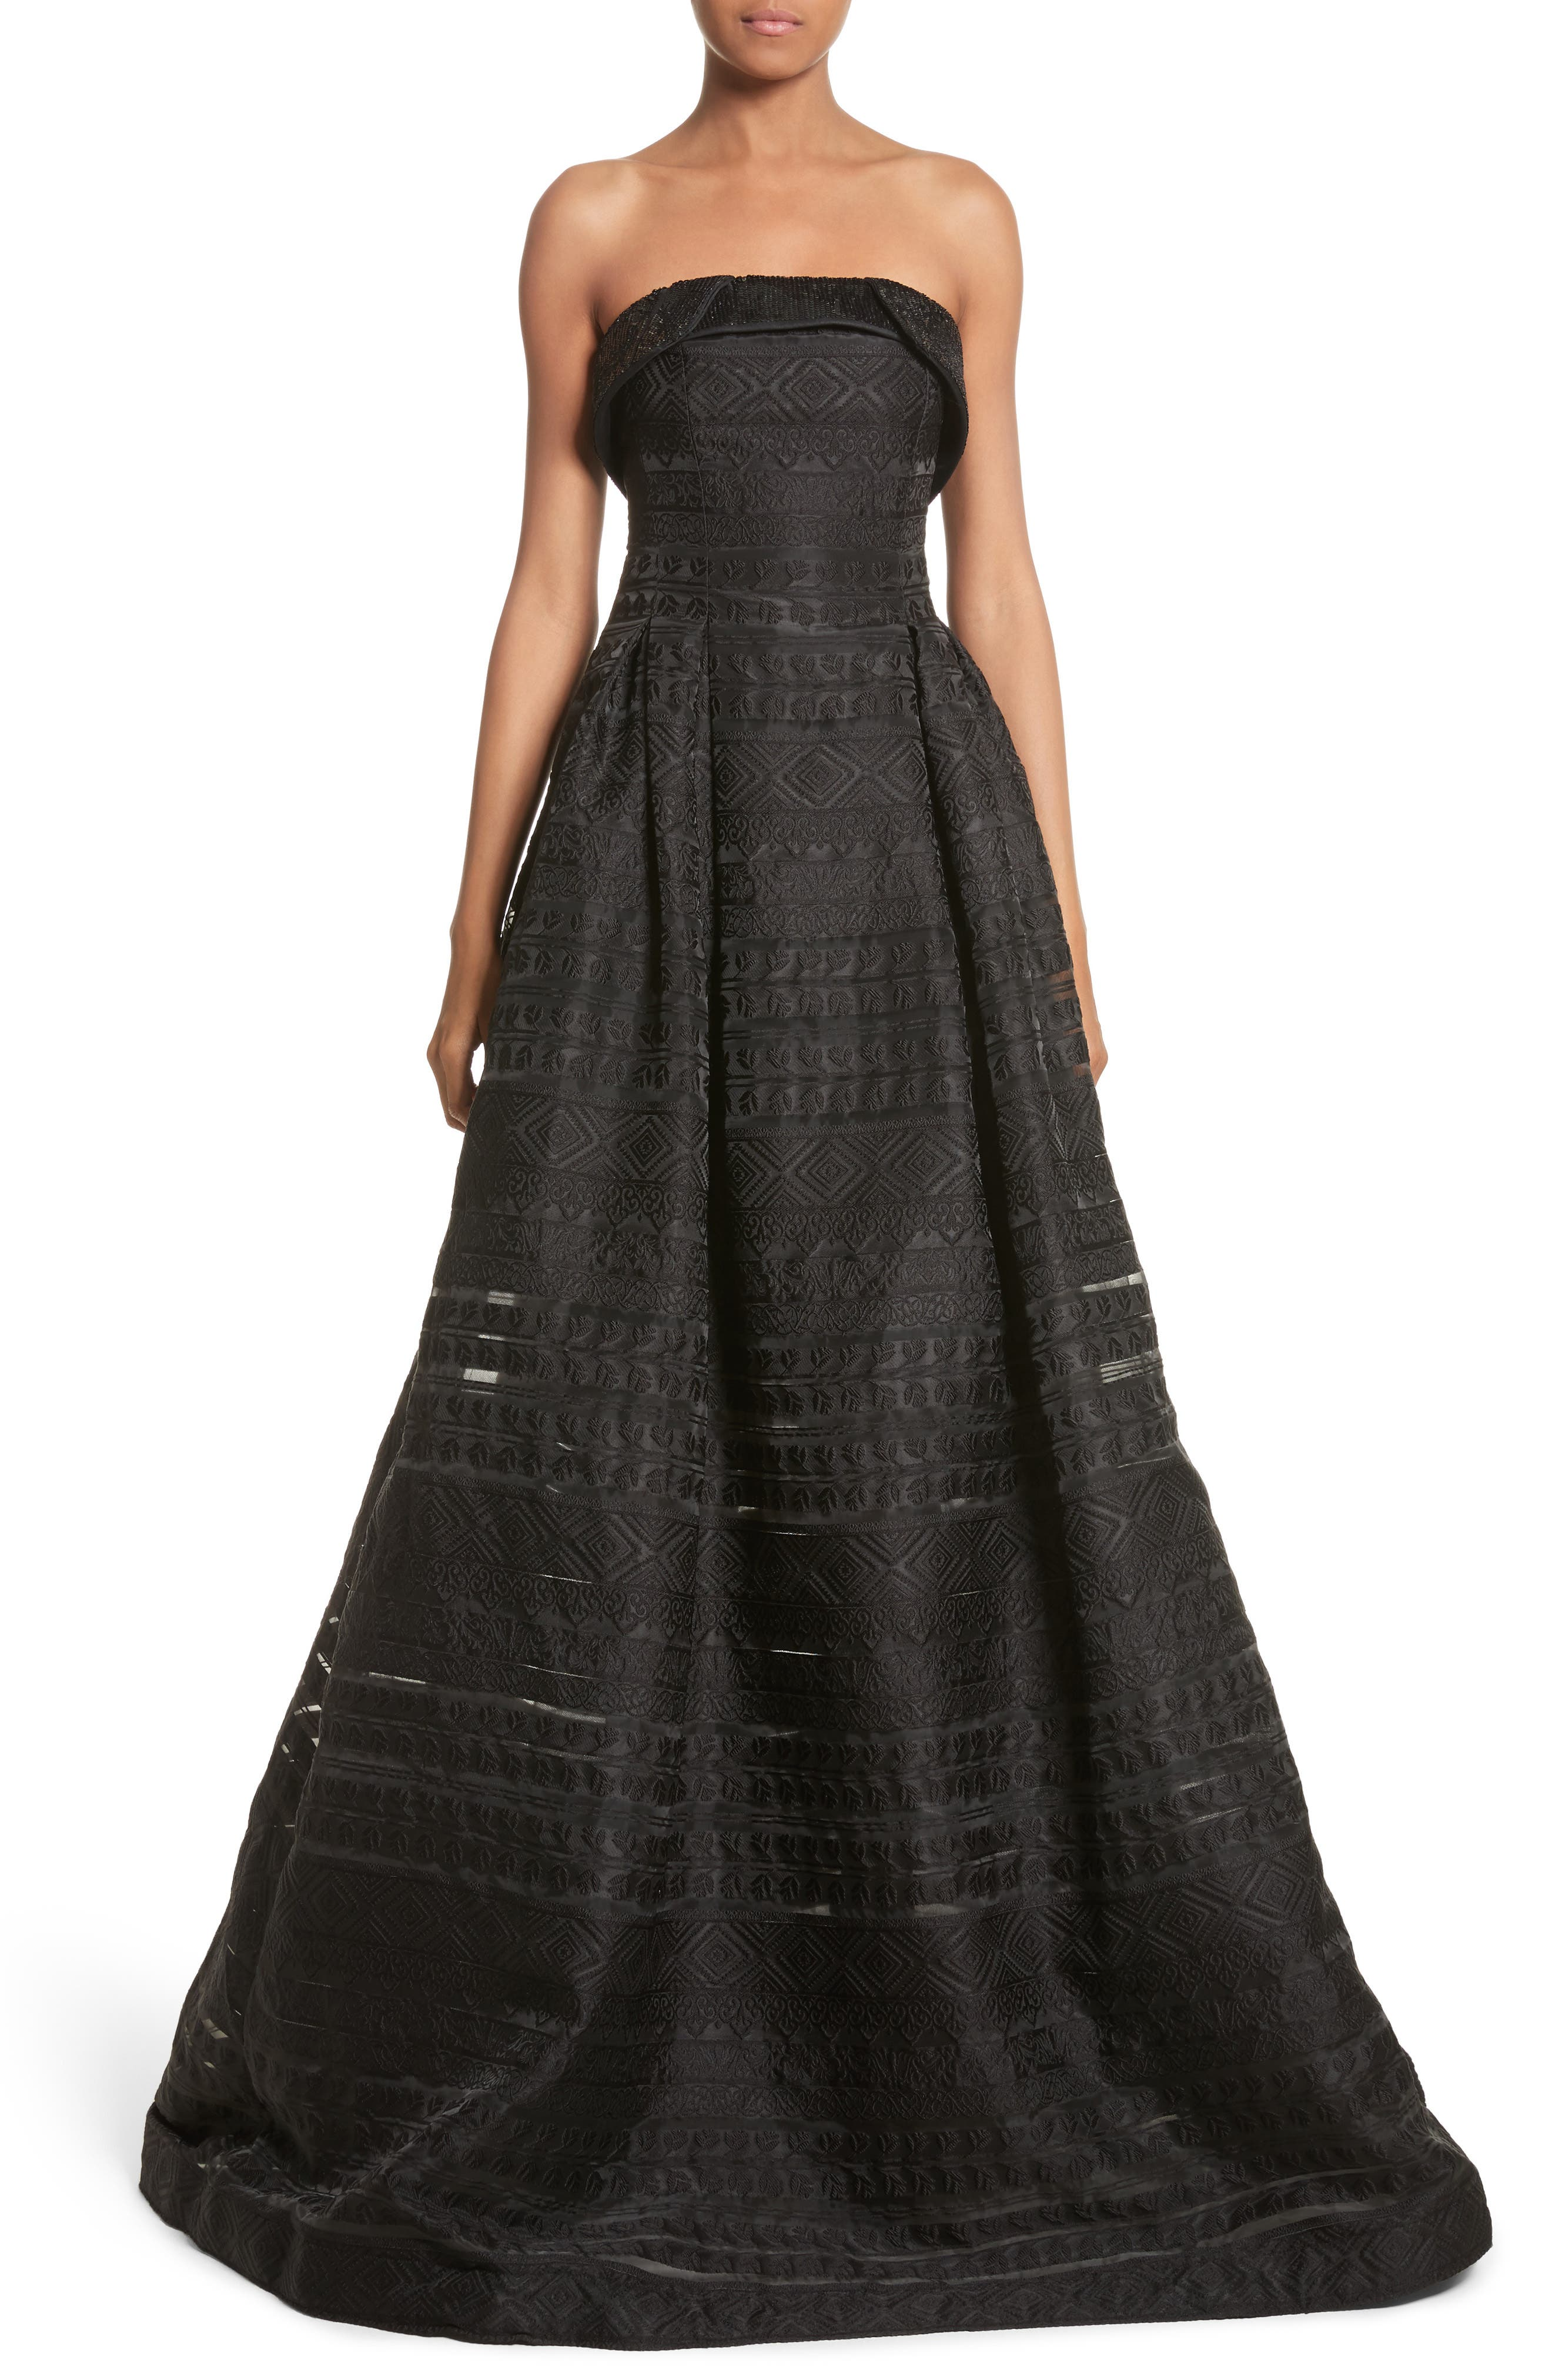 Noir Istiklal Embellished Strapless Ballgown,                             Main thumbnail 1, color,                             001